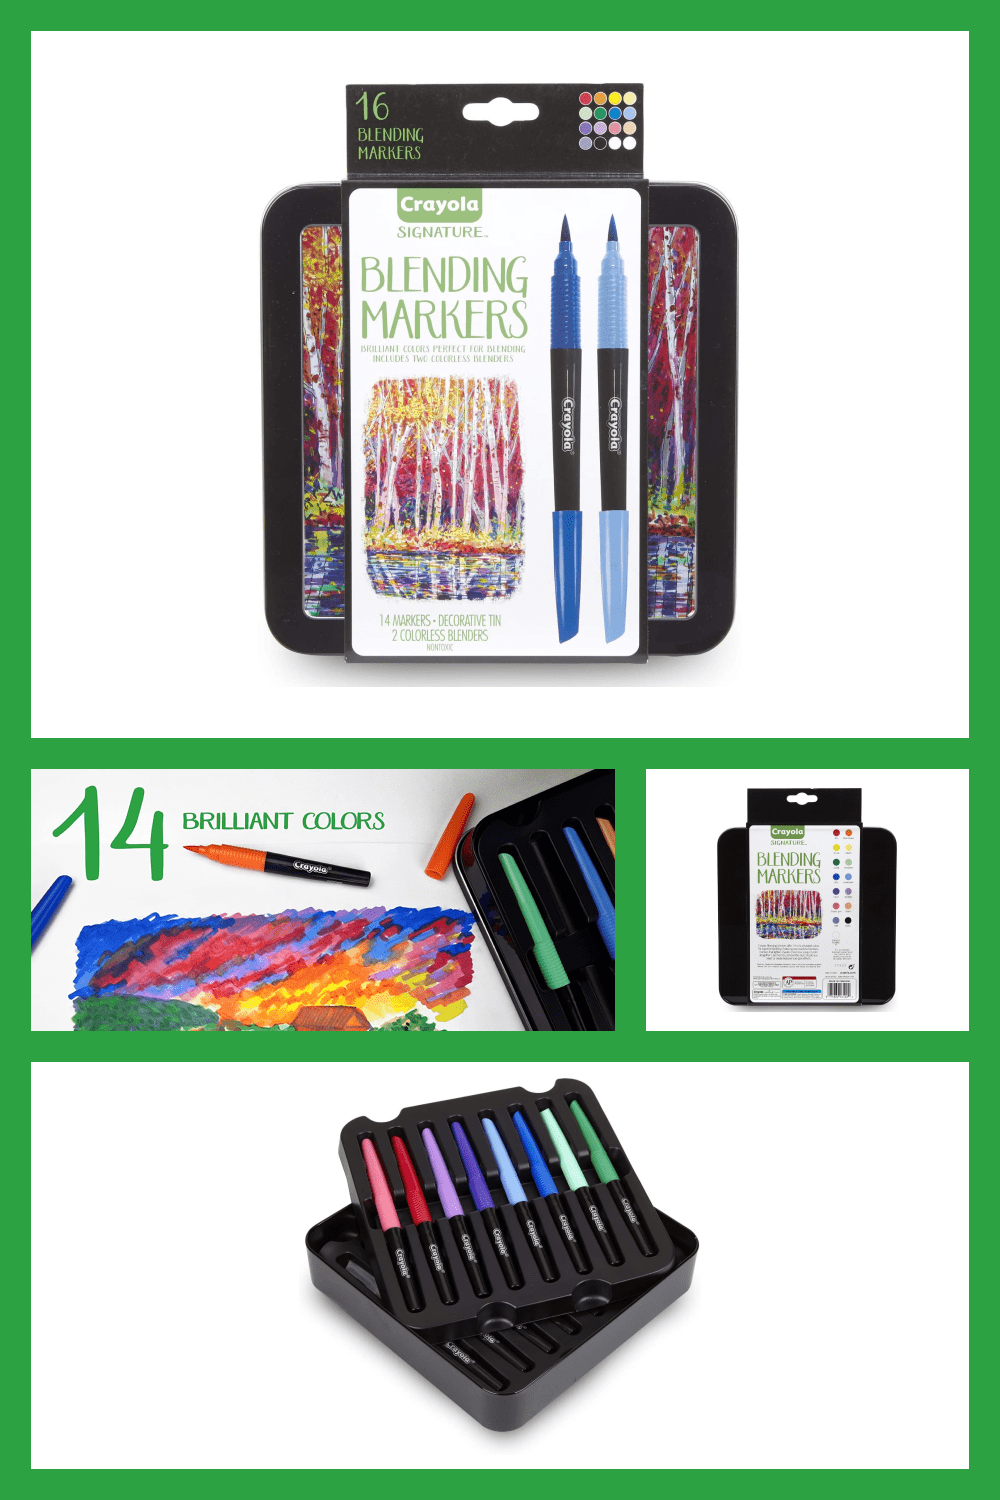 Blending markers & decorative tin: features 14 vibrant color markers, 2 colorless markers for blending, and a marker storage case.